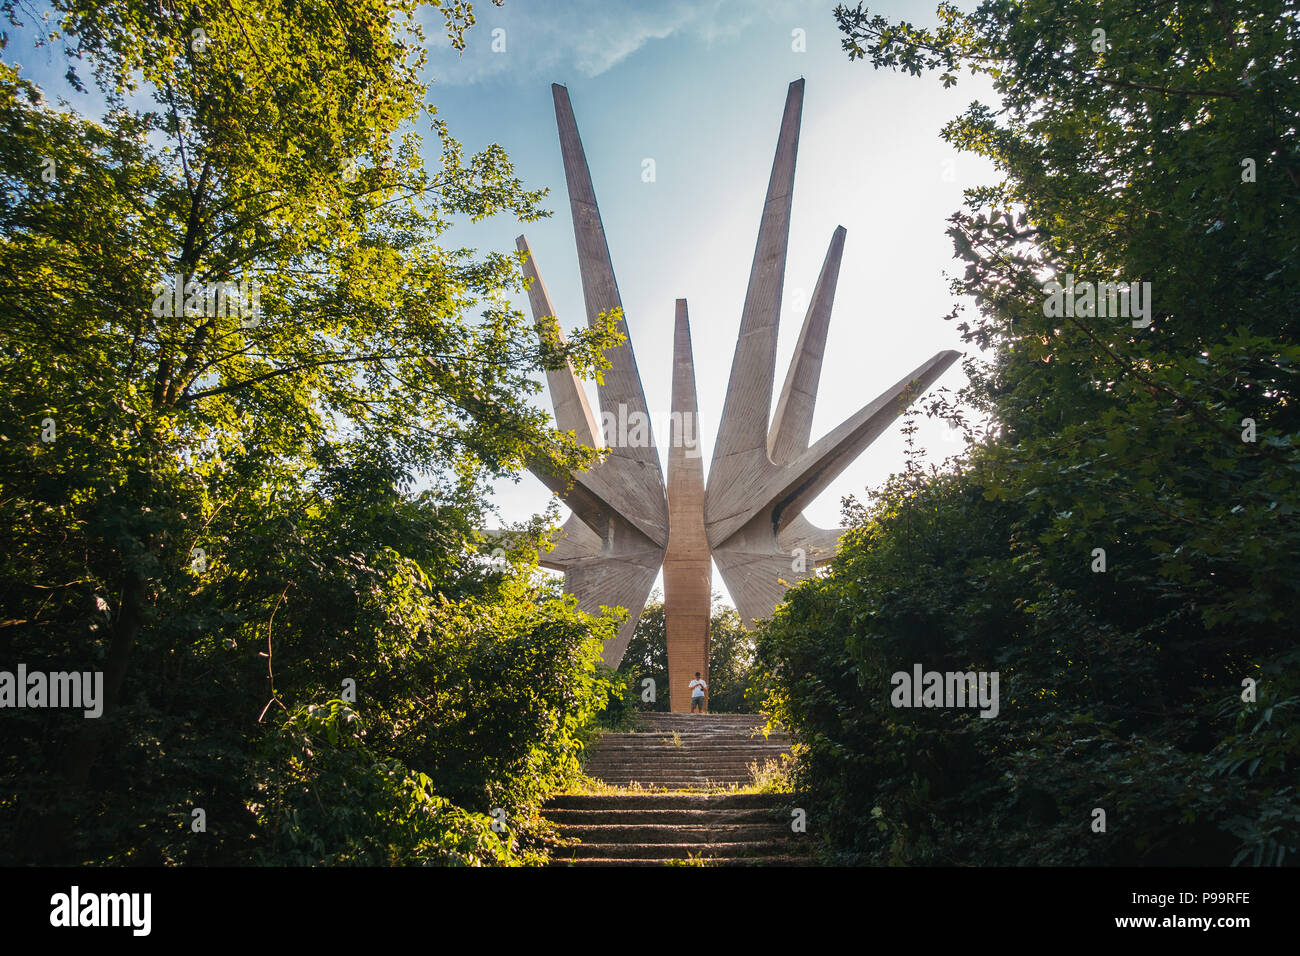 The towering Monument to the Fallen Soldiers of the Kosmaj Detachment, tucked amidst some trees off the roadside in Serbia Stock Photo